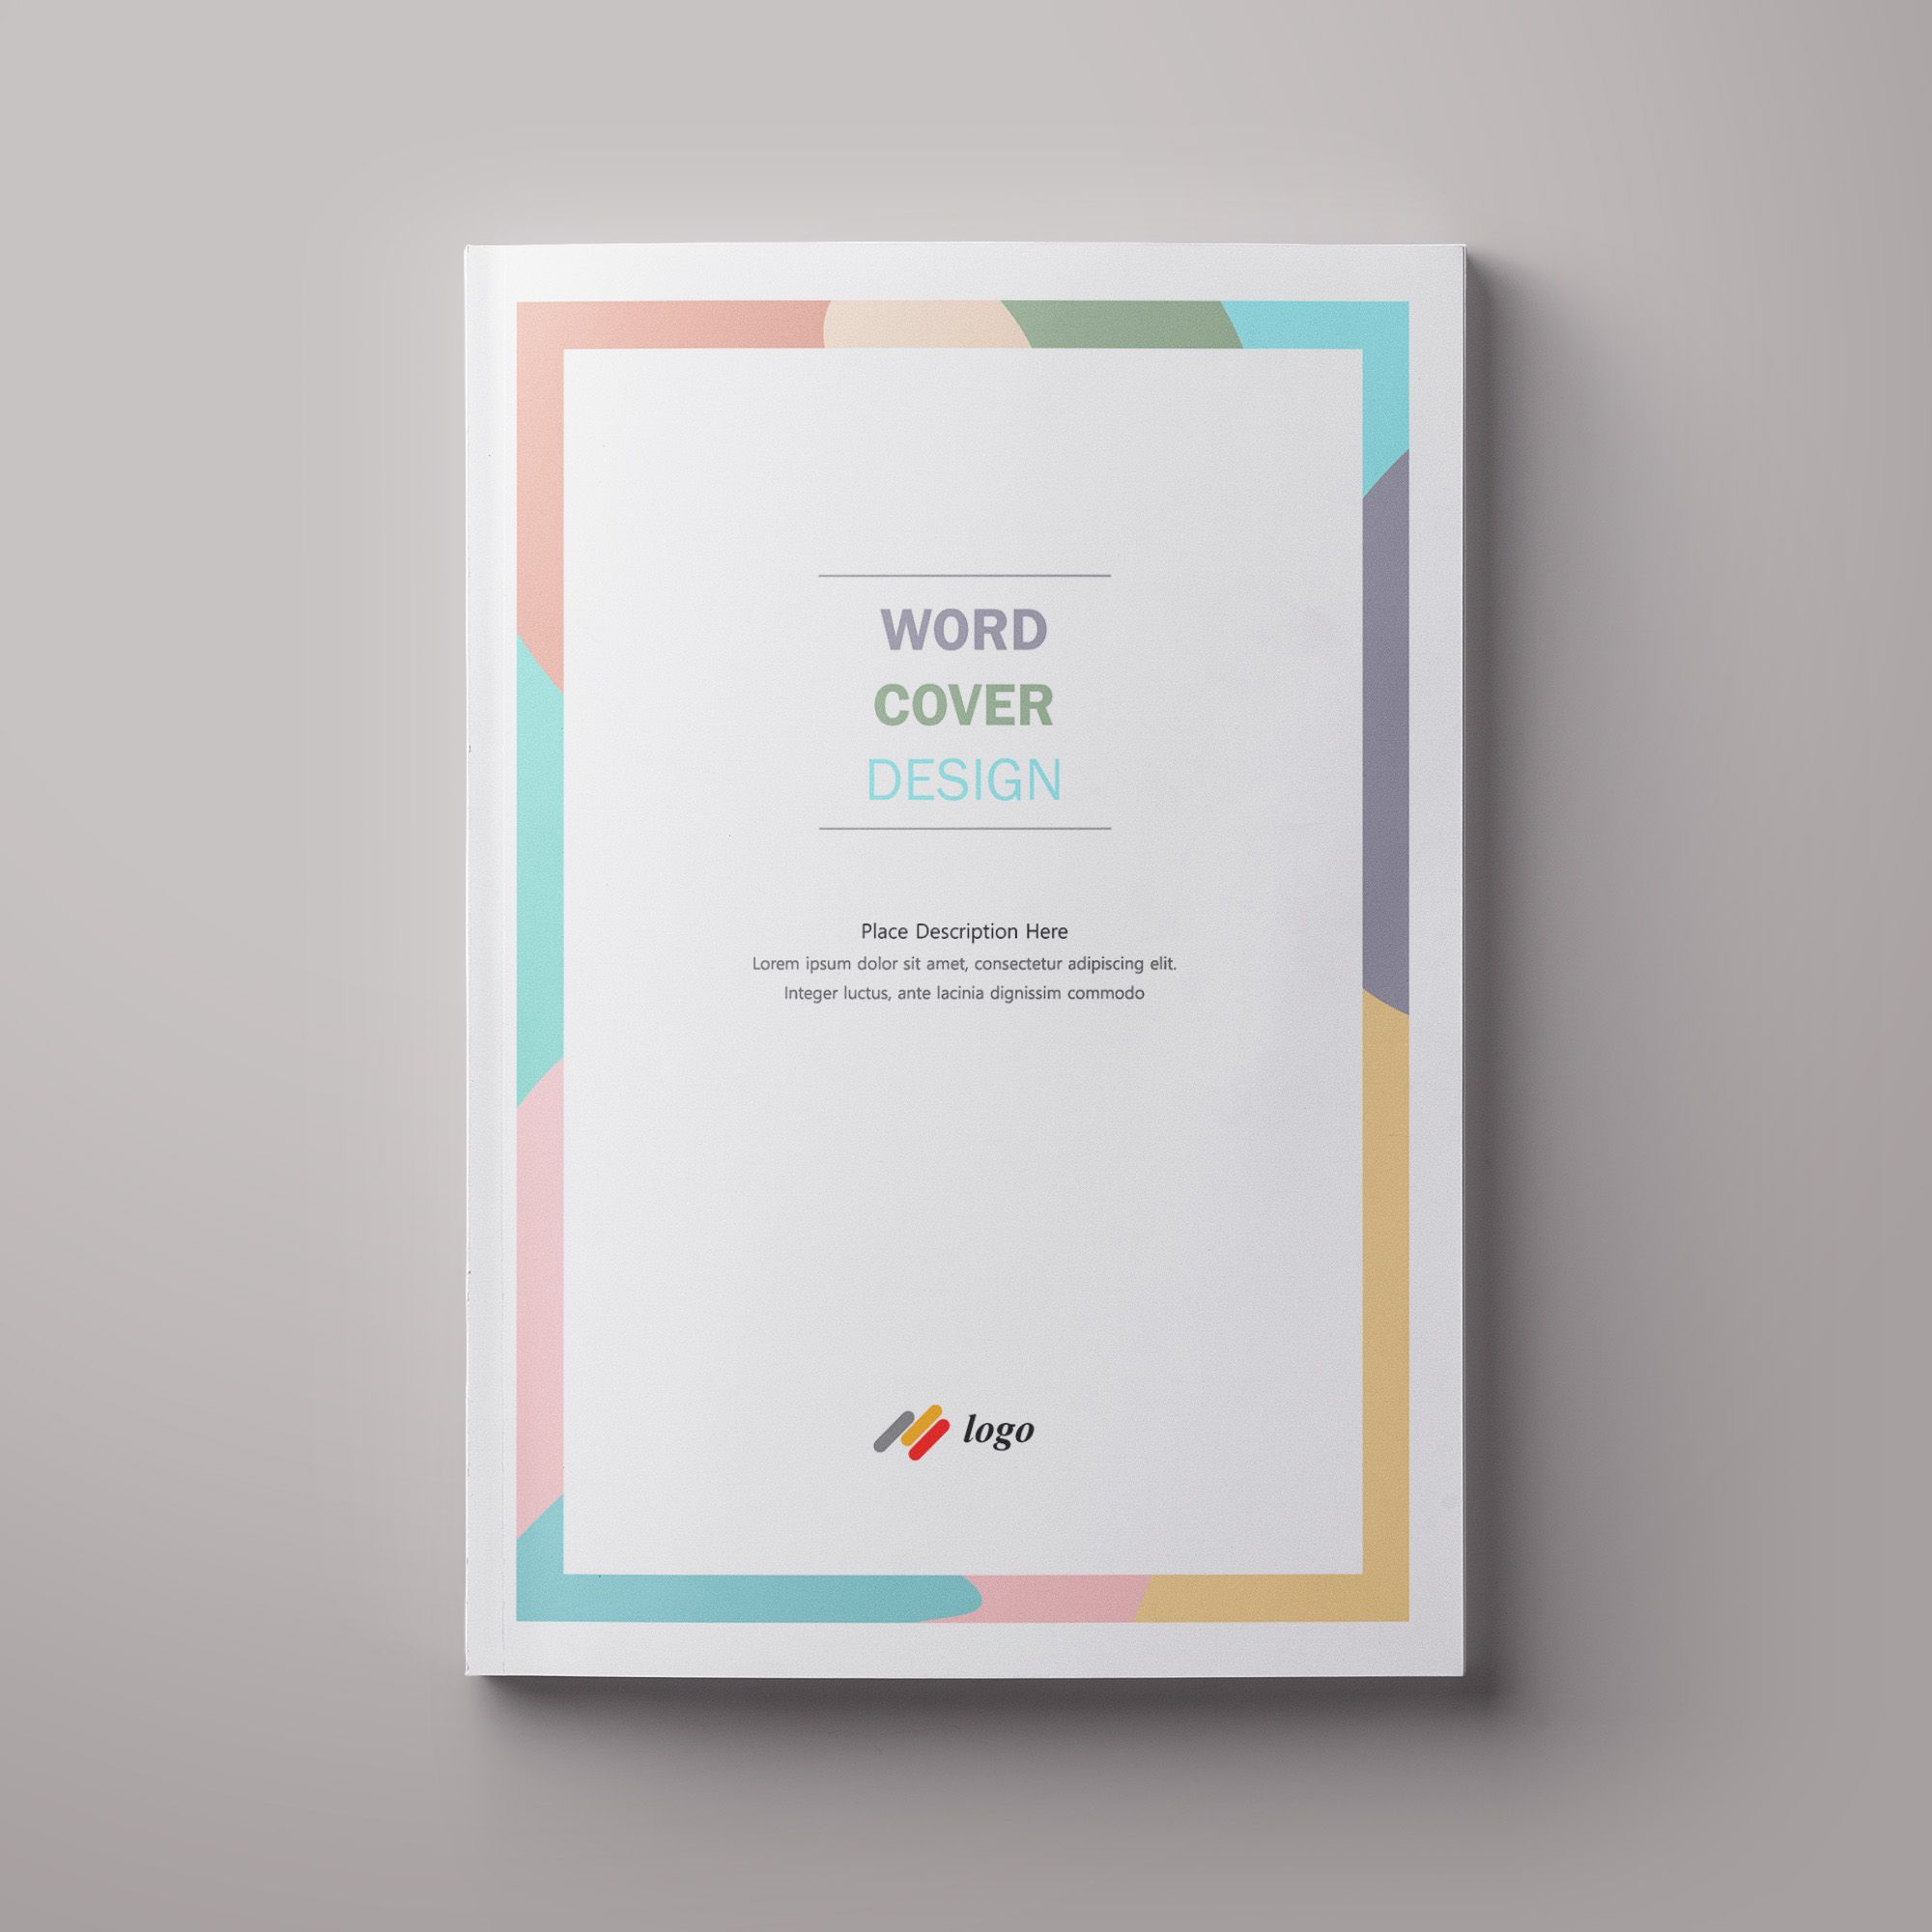 Microsoft Word Cover Templates 45 Free Download Word Template Design Cover Page Template Word Folder Cover Design Microsoft word templates for mac